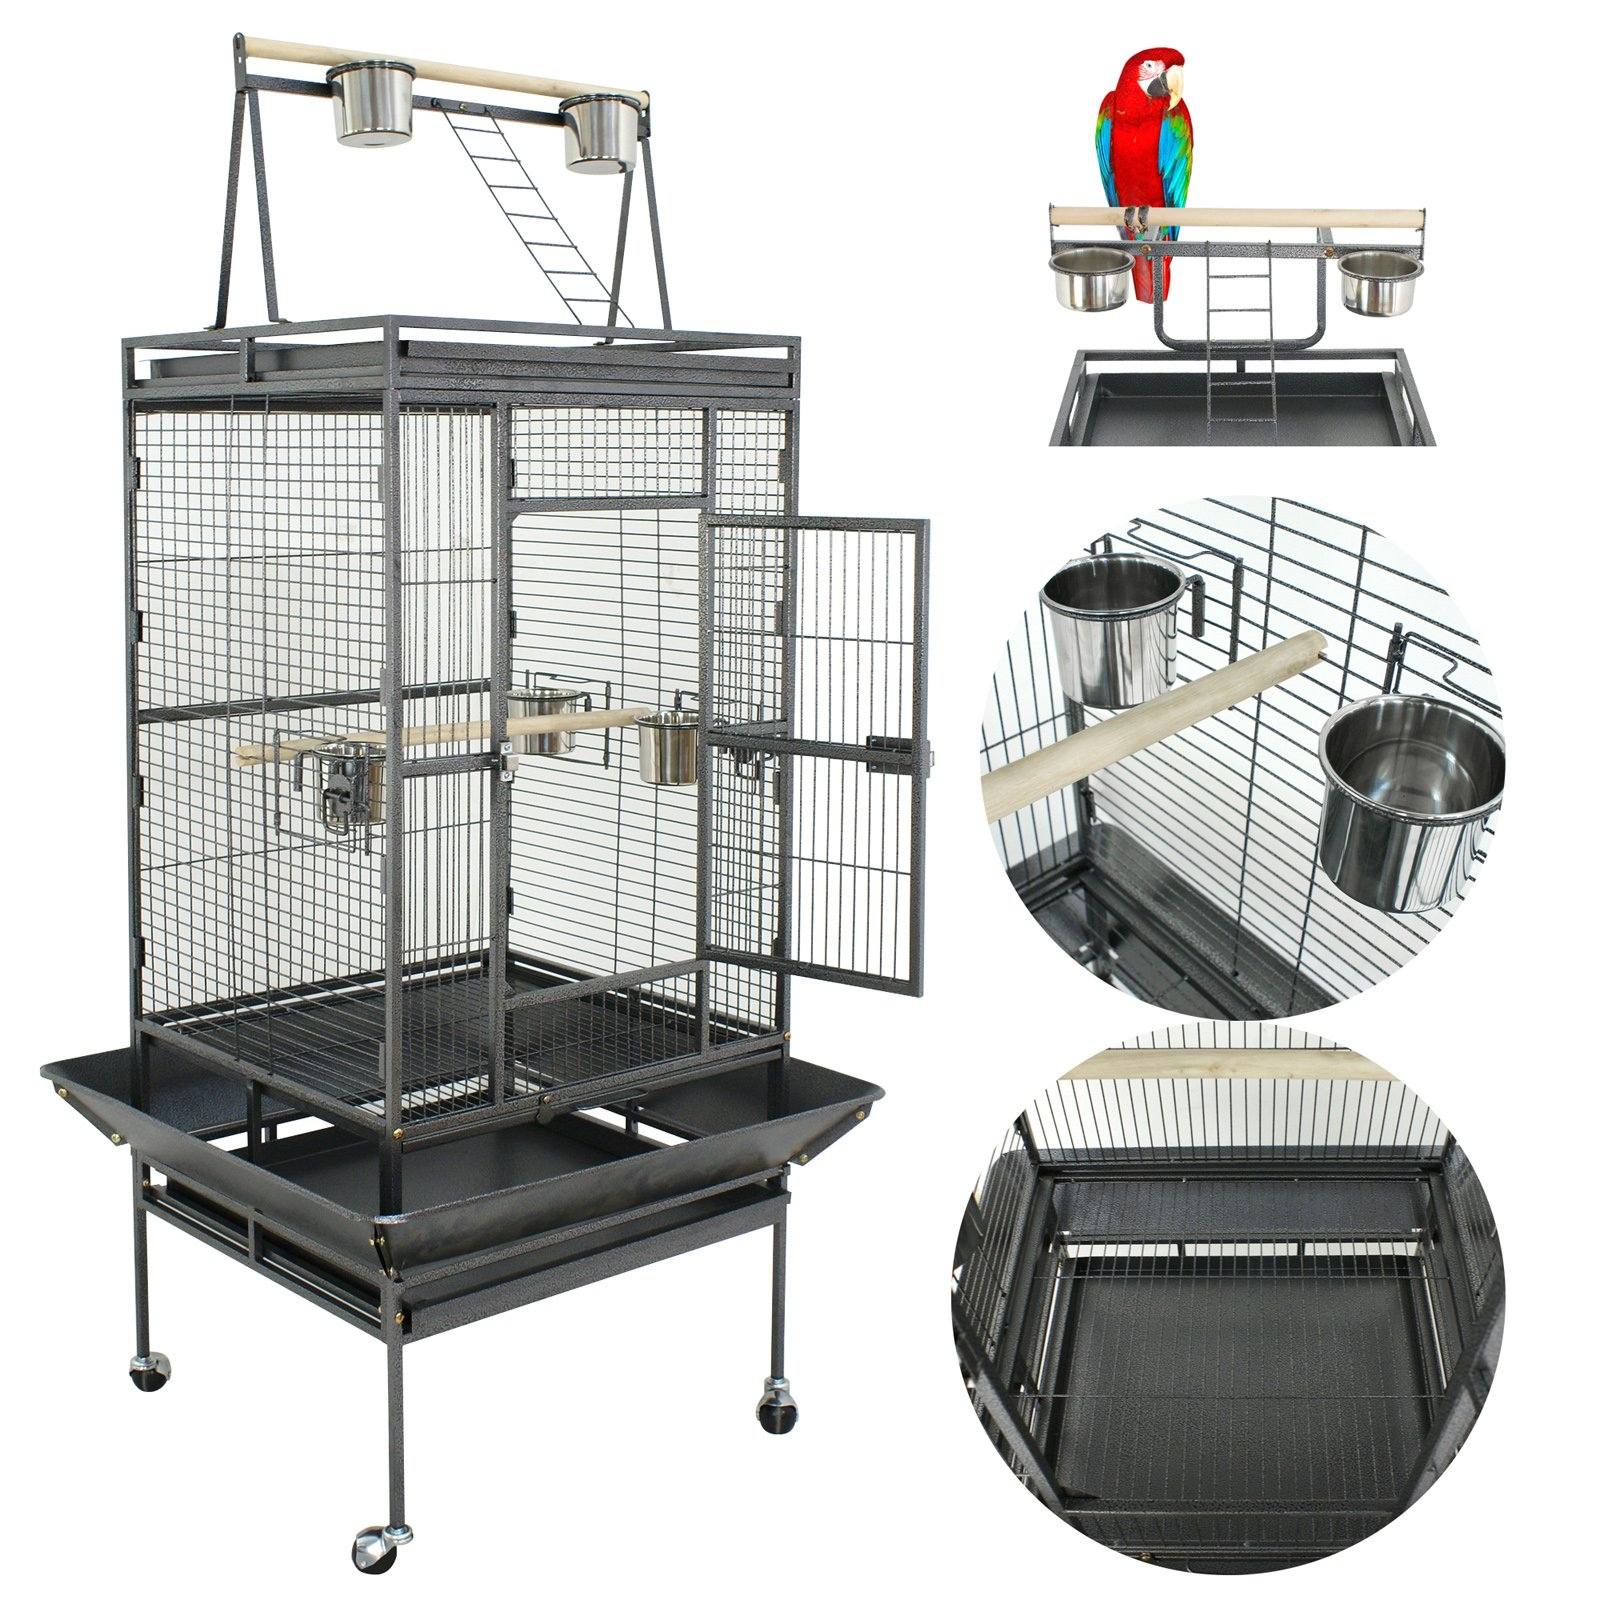 Super Deal 53''/61''/68'' Large Bird Cage Play Top Parrot Chinchilla Cage Macaw Cockatiel Cockatoo Pet House, 68 inch